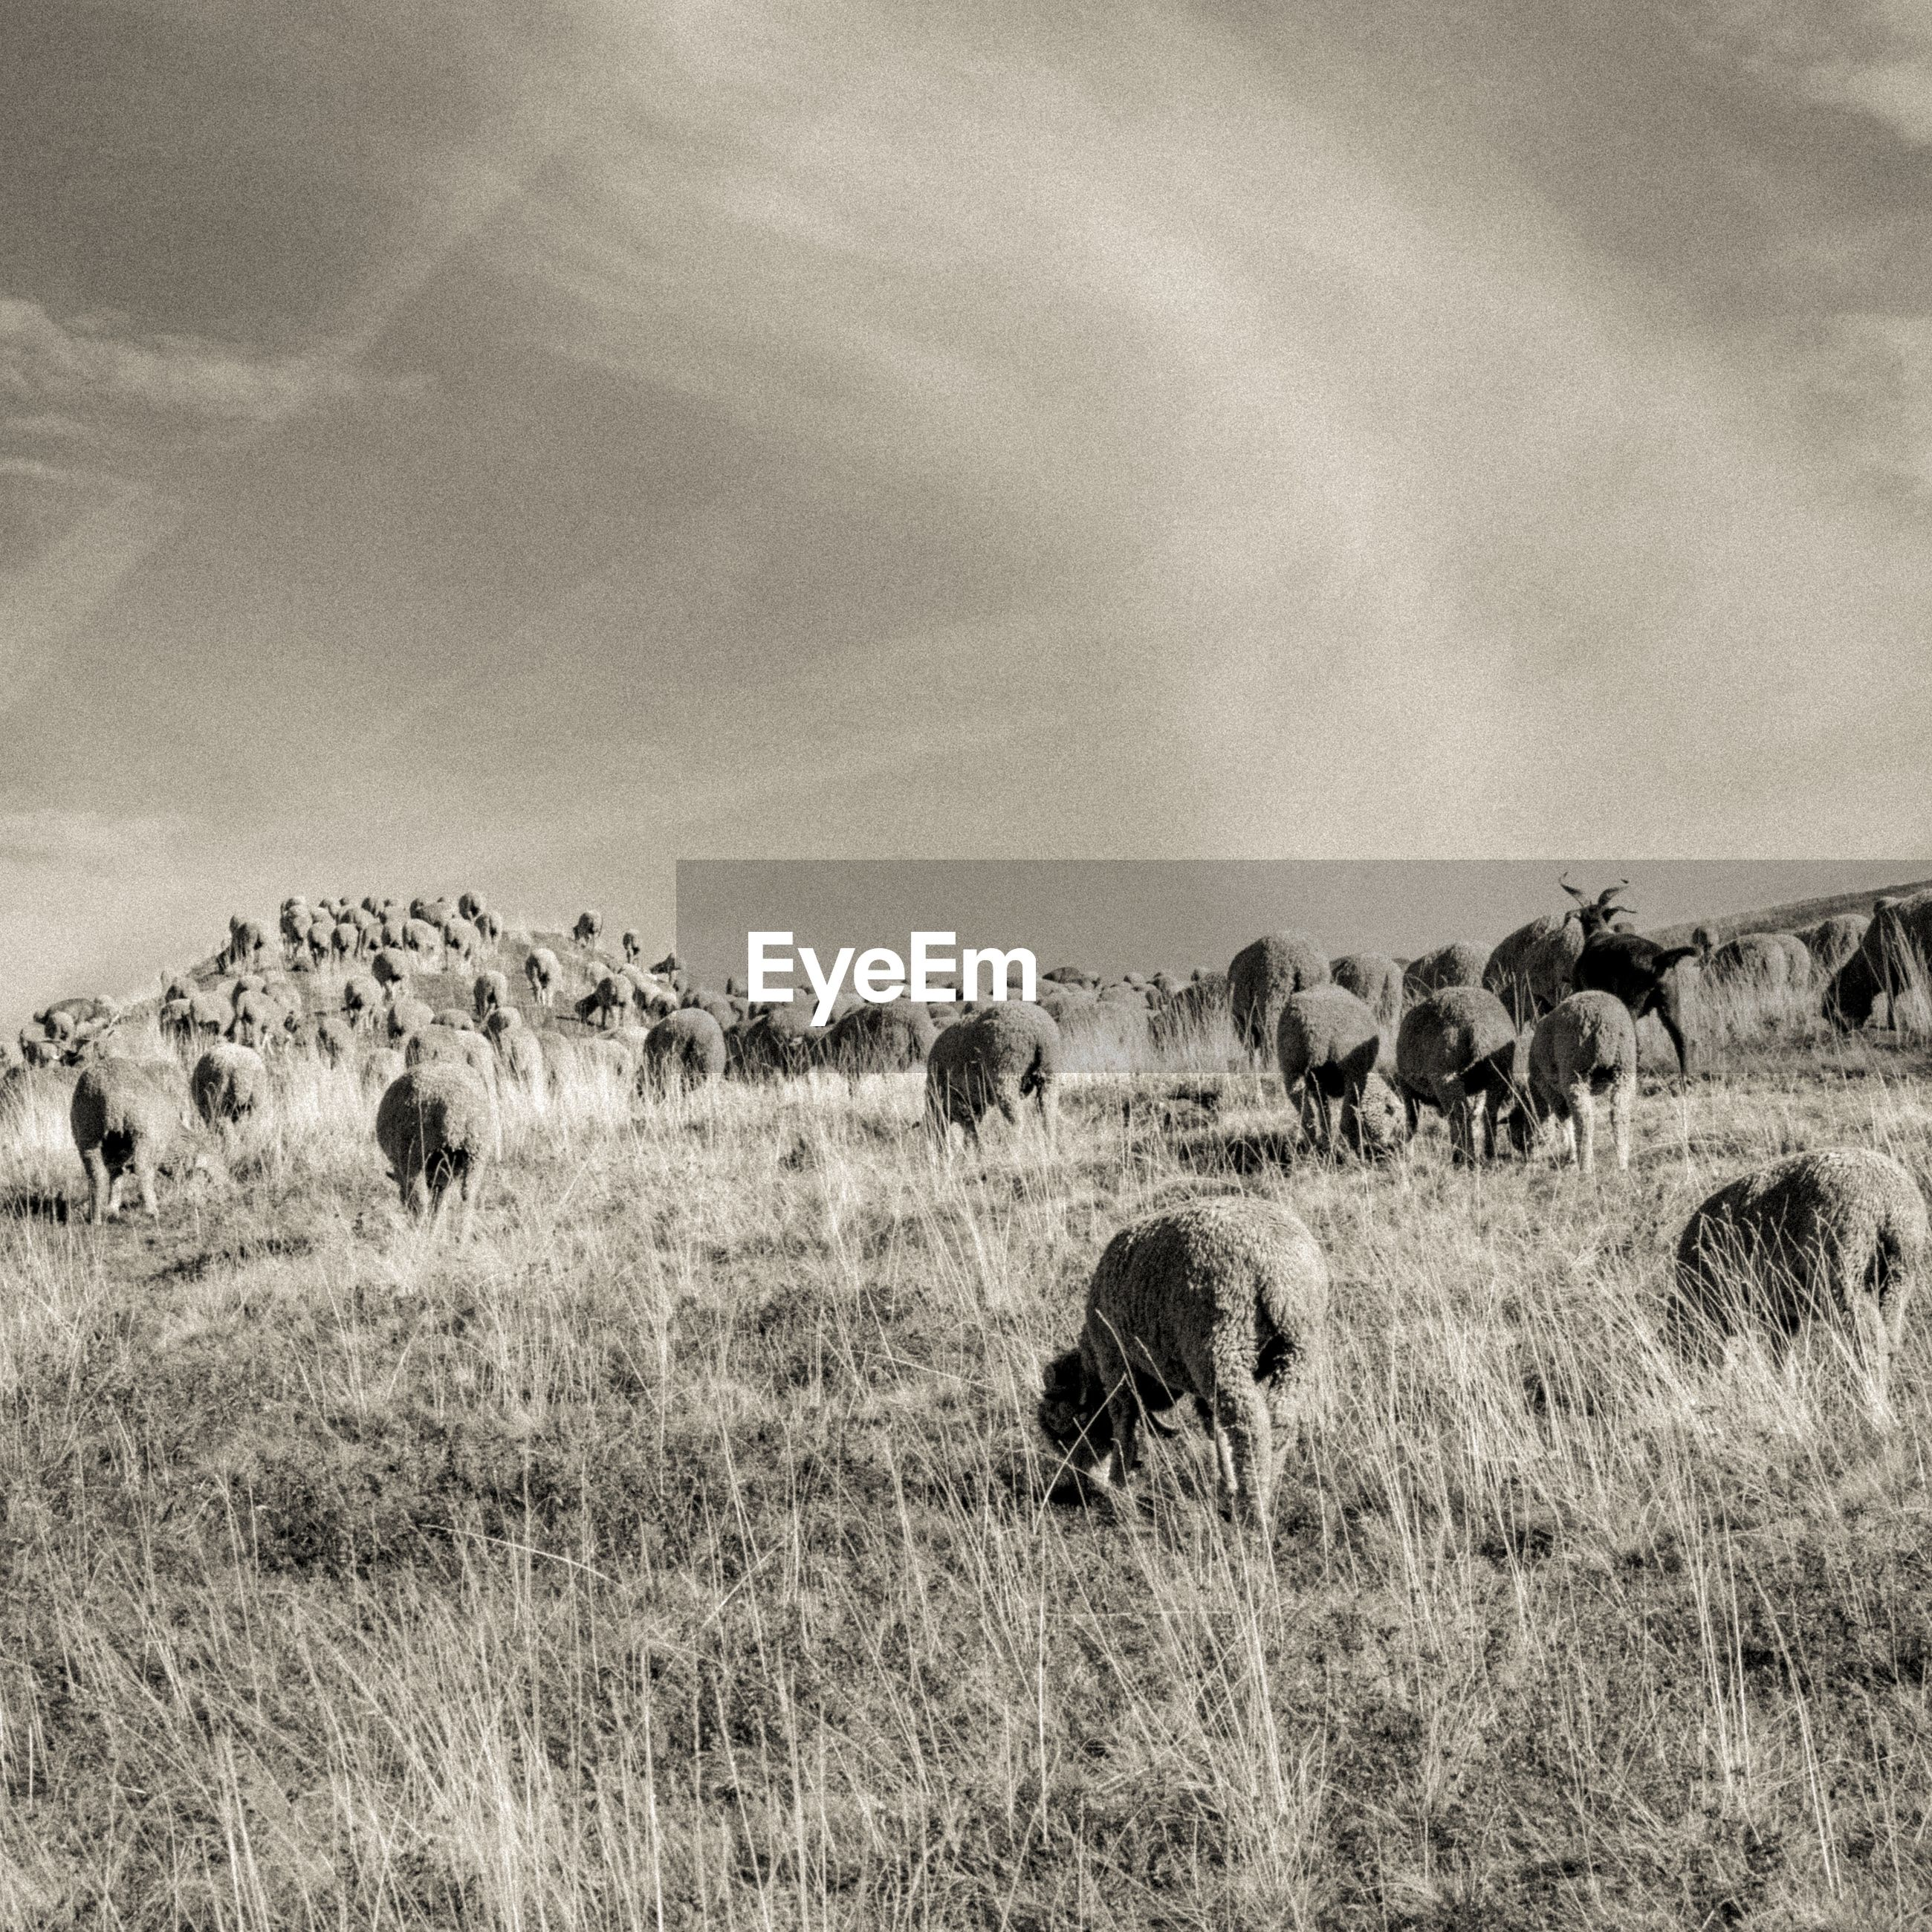 VIEW OF SHEEP ON LANDSCAPE